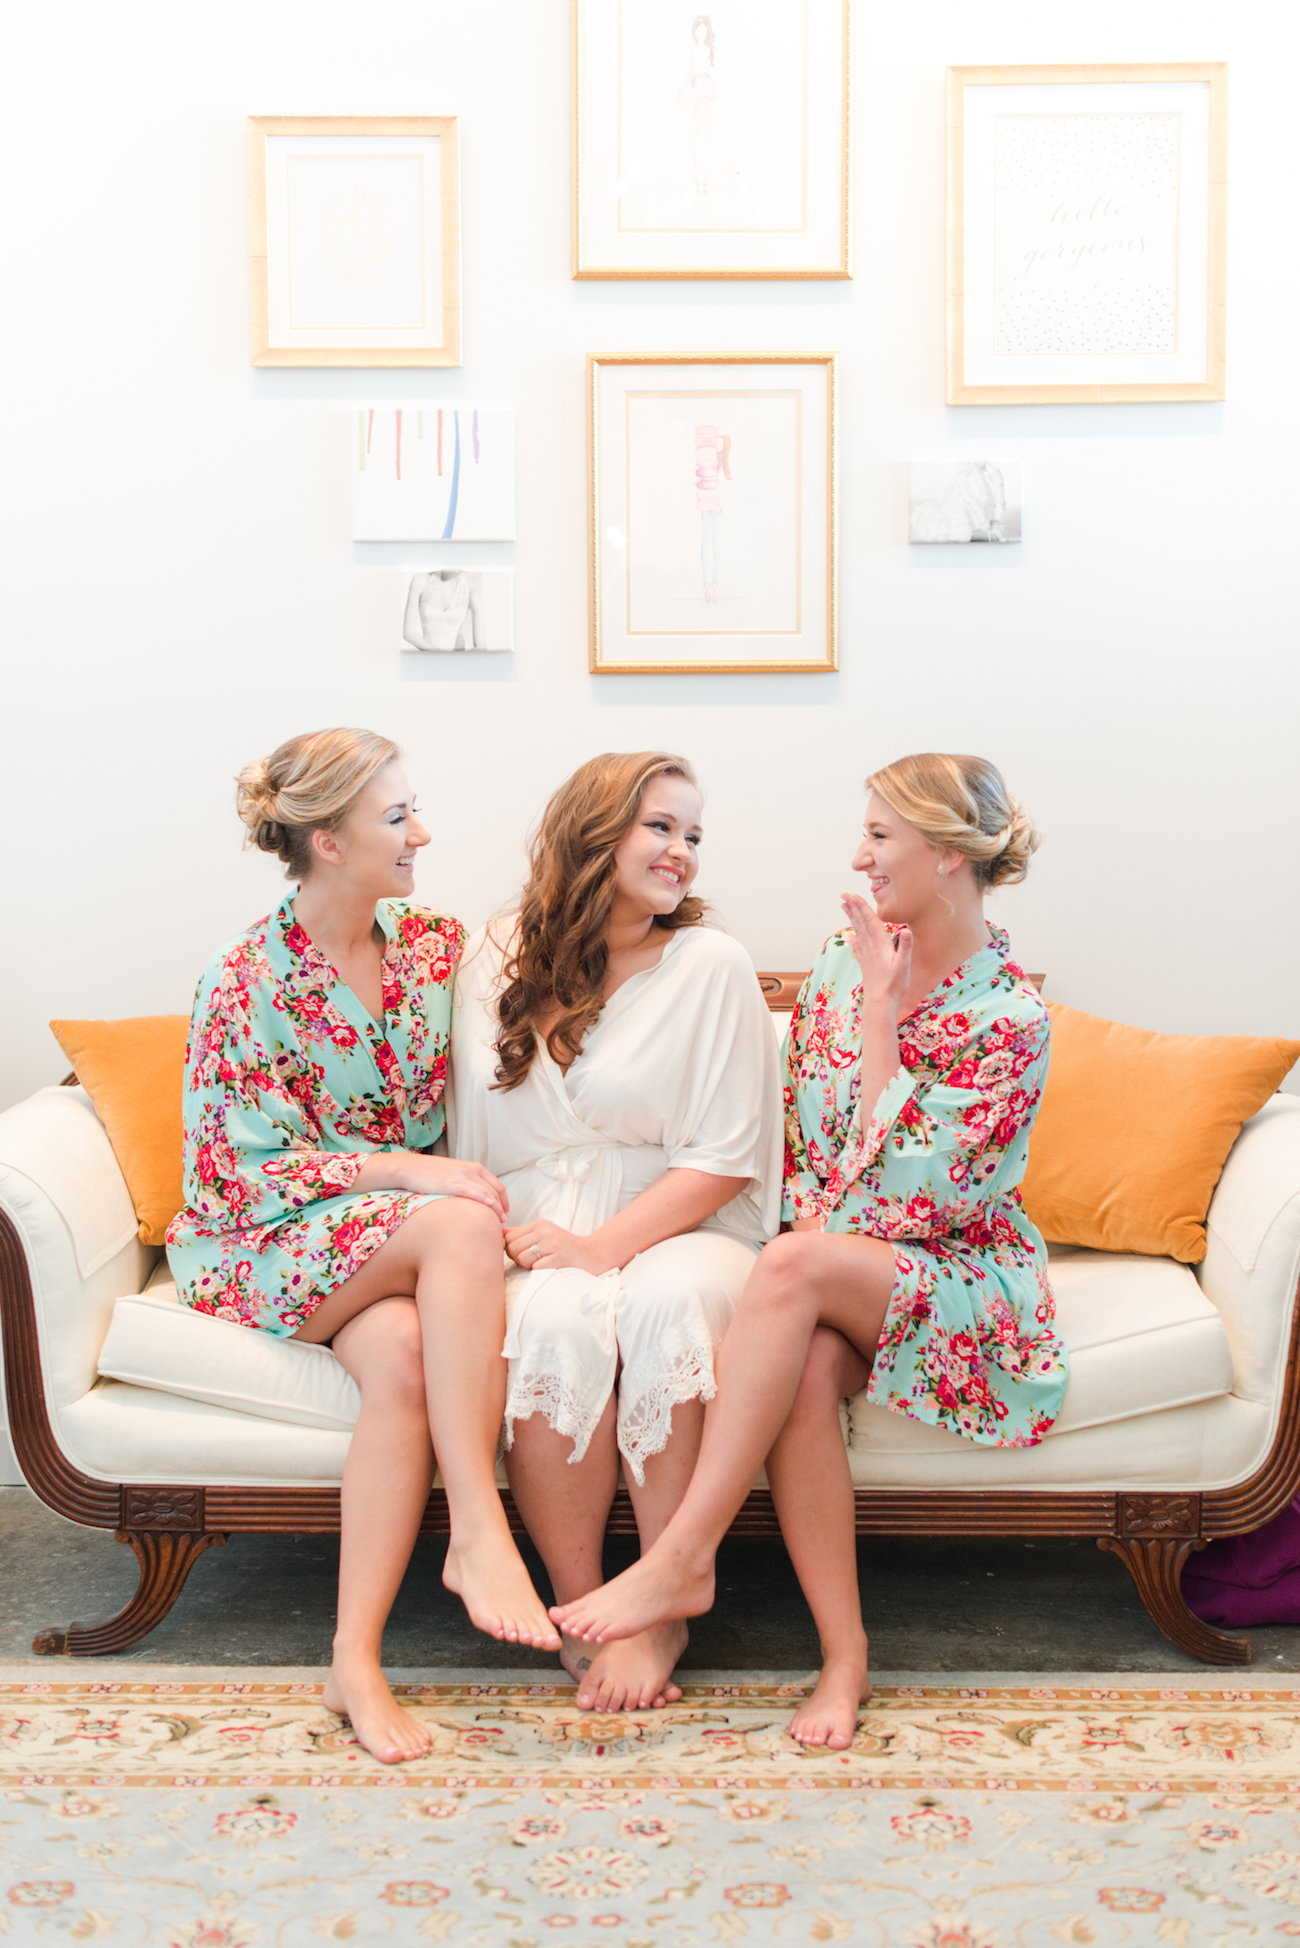 Taryn with two of her bridesmaids in the bridal suite